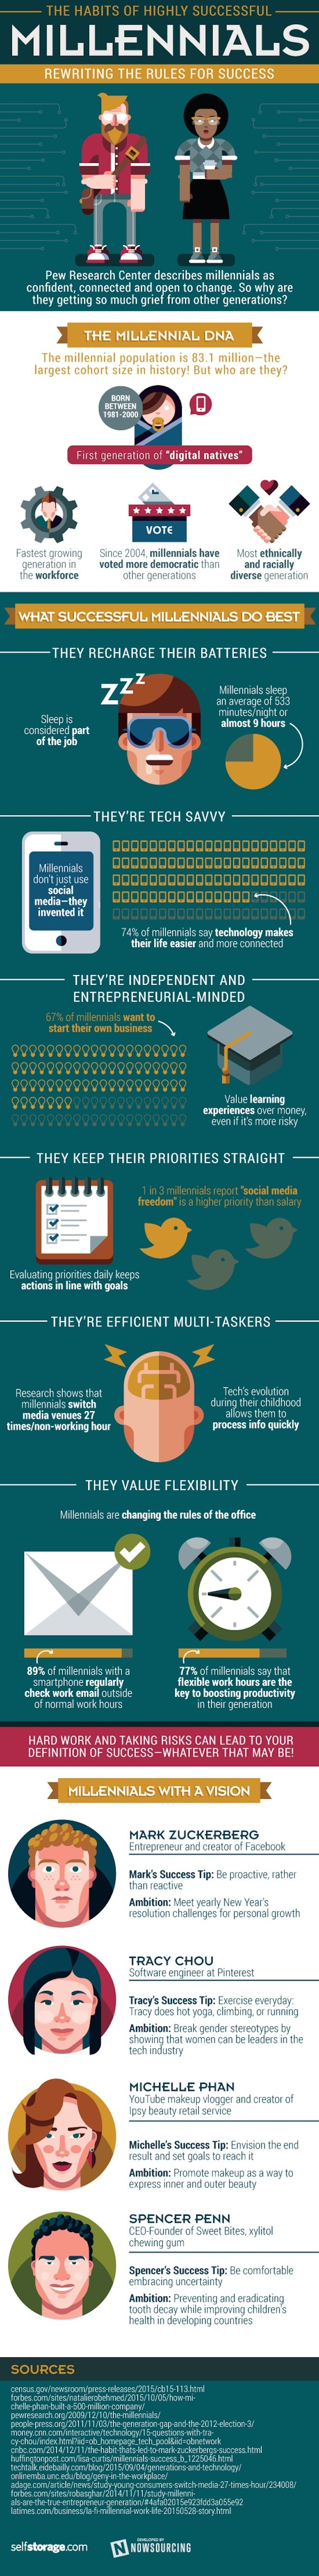 The Habits of Highly Successful Millennials Infographic